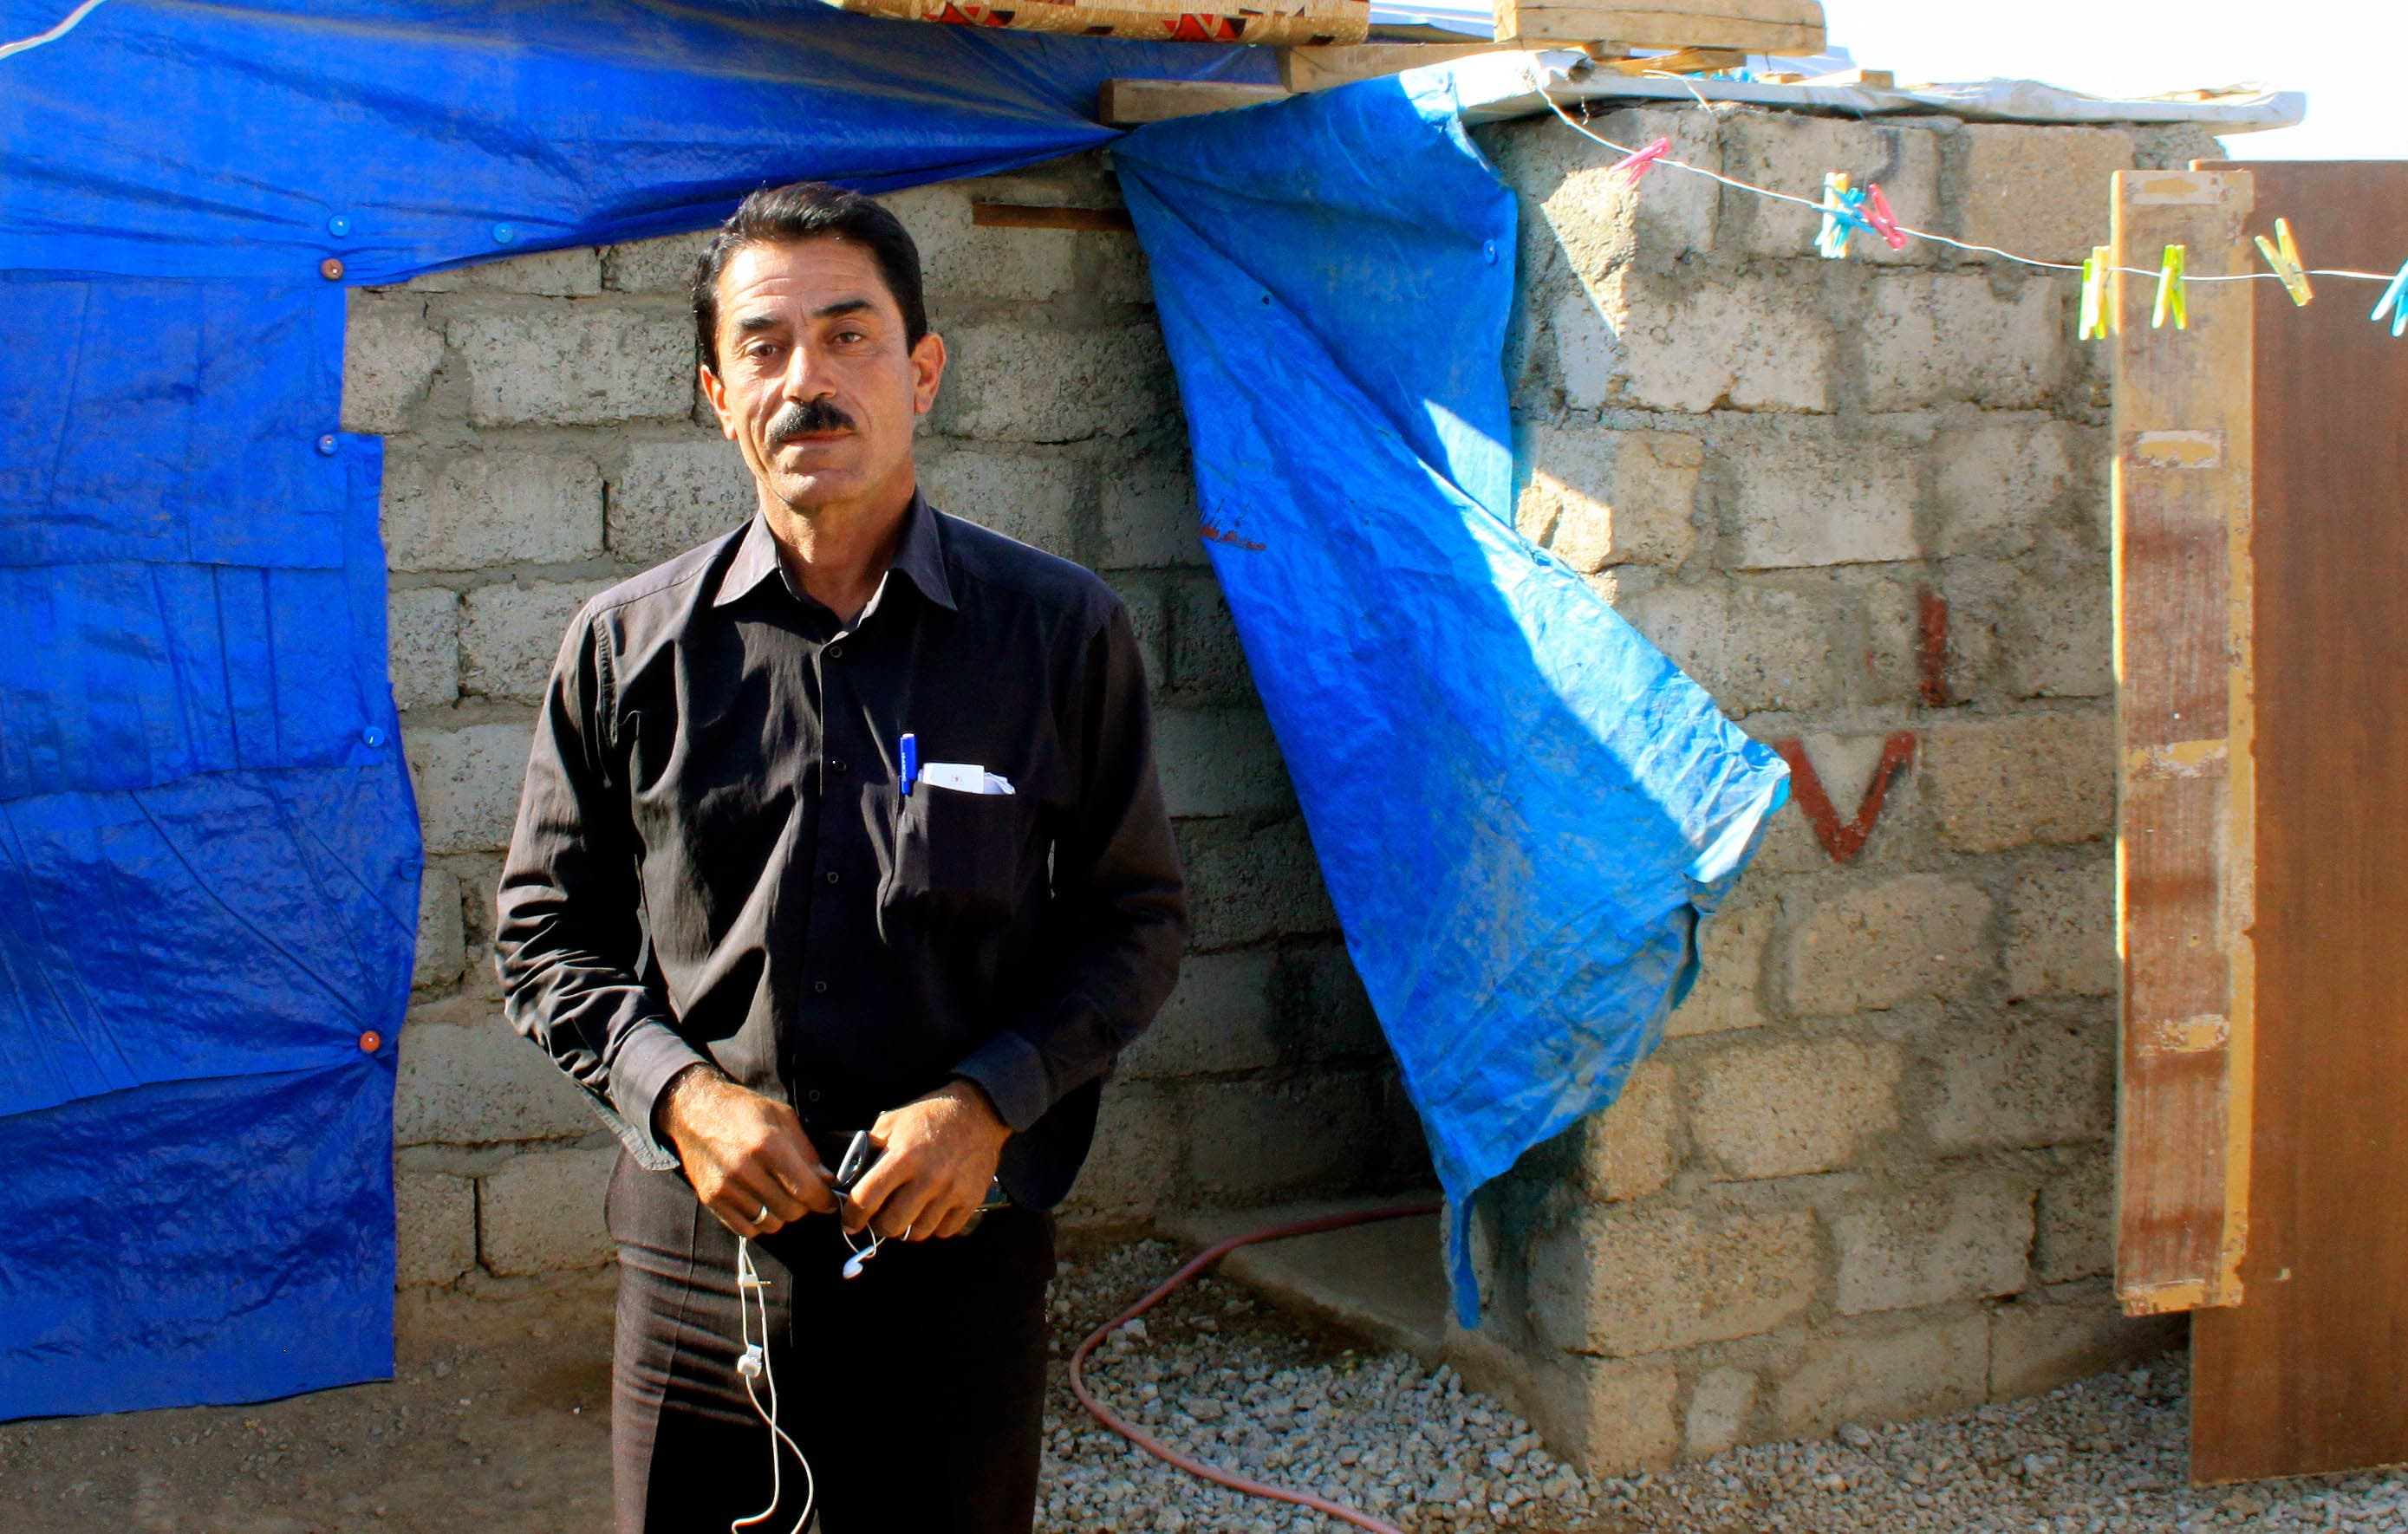 Waleed Ibrahim was a civil servant in Damacus before being run out of the city by the security services, who suspected him because he was a Kurd.